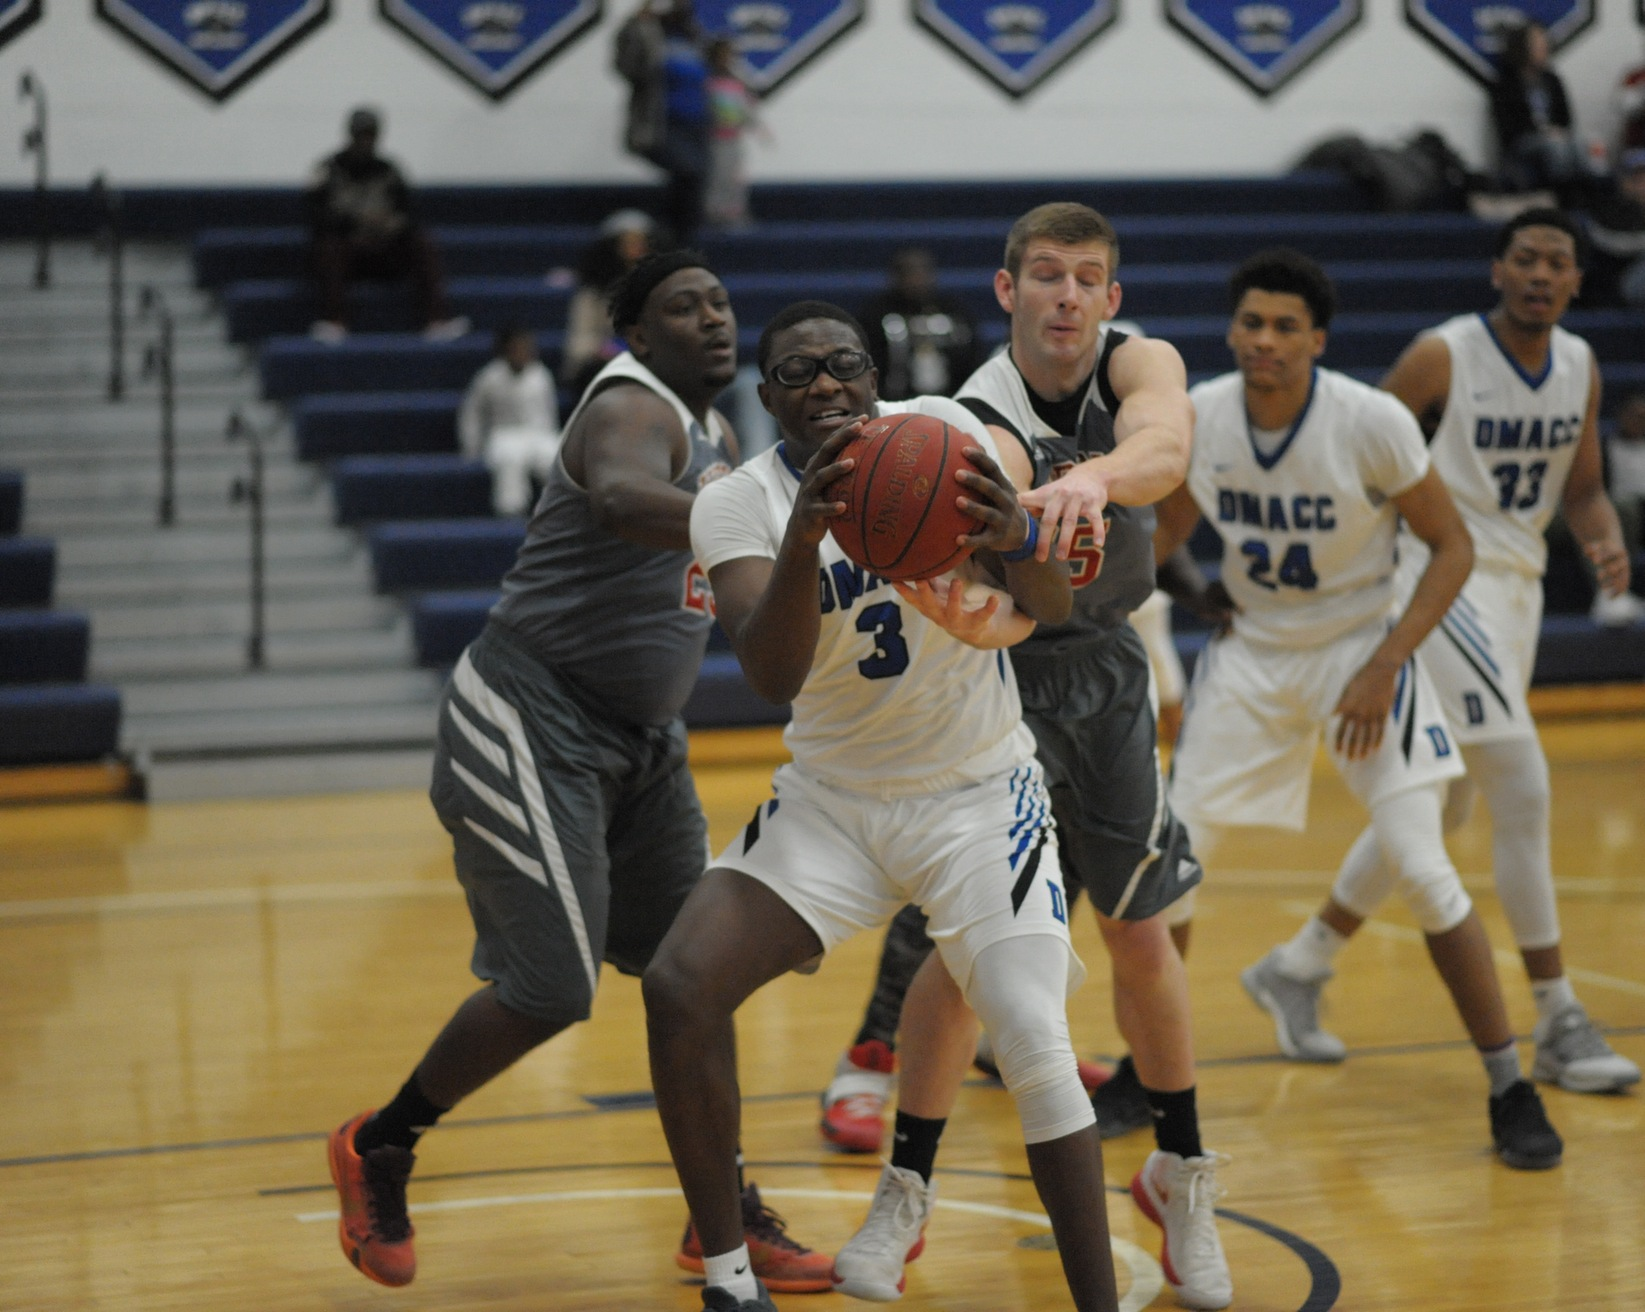 Wali Parks fights for rebound during DMACC's win vs. Hibbing